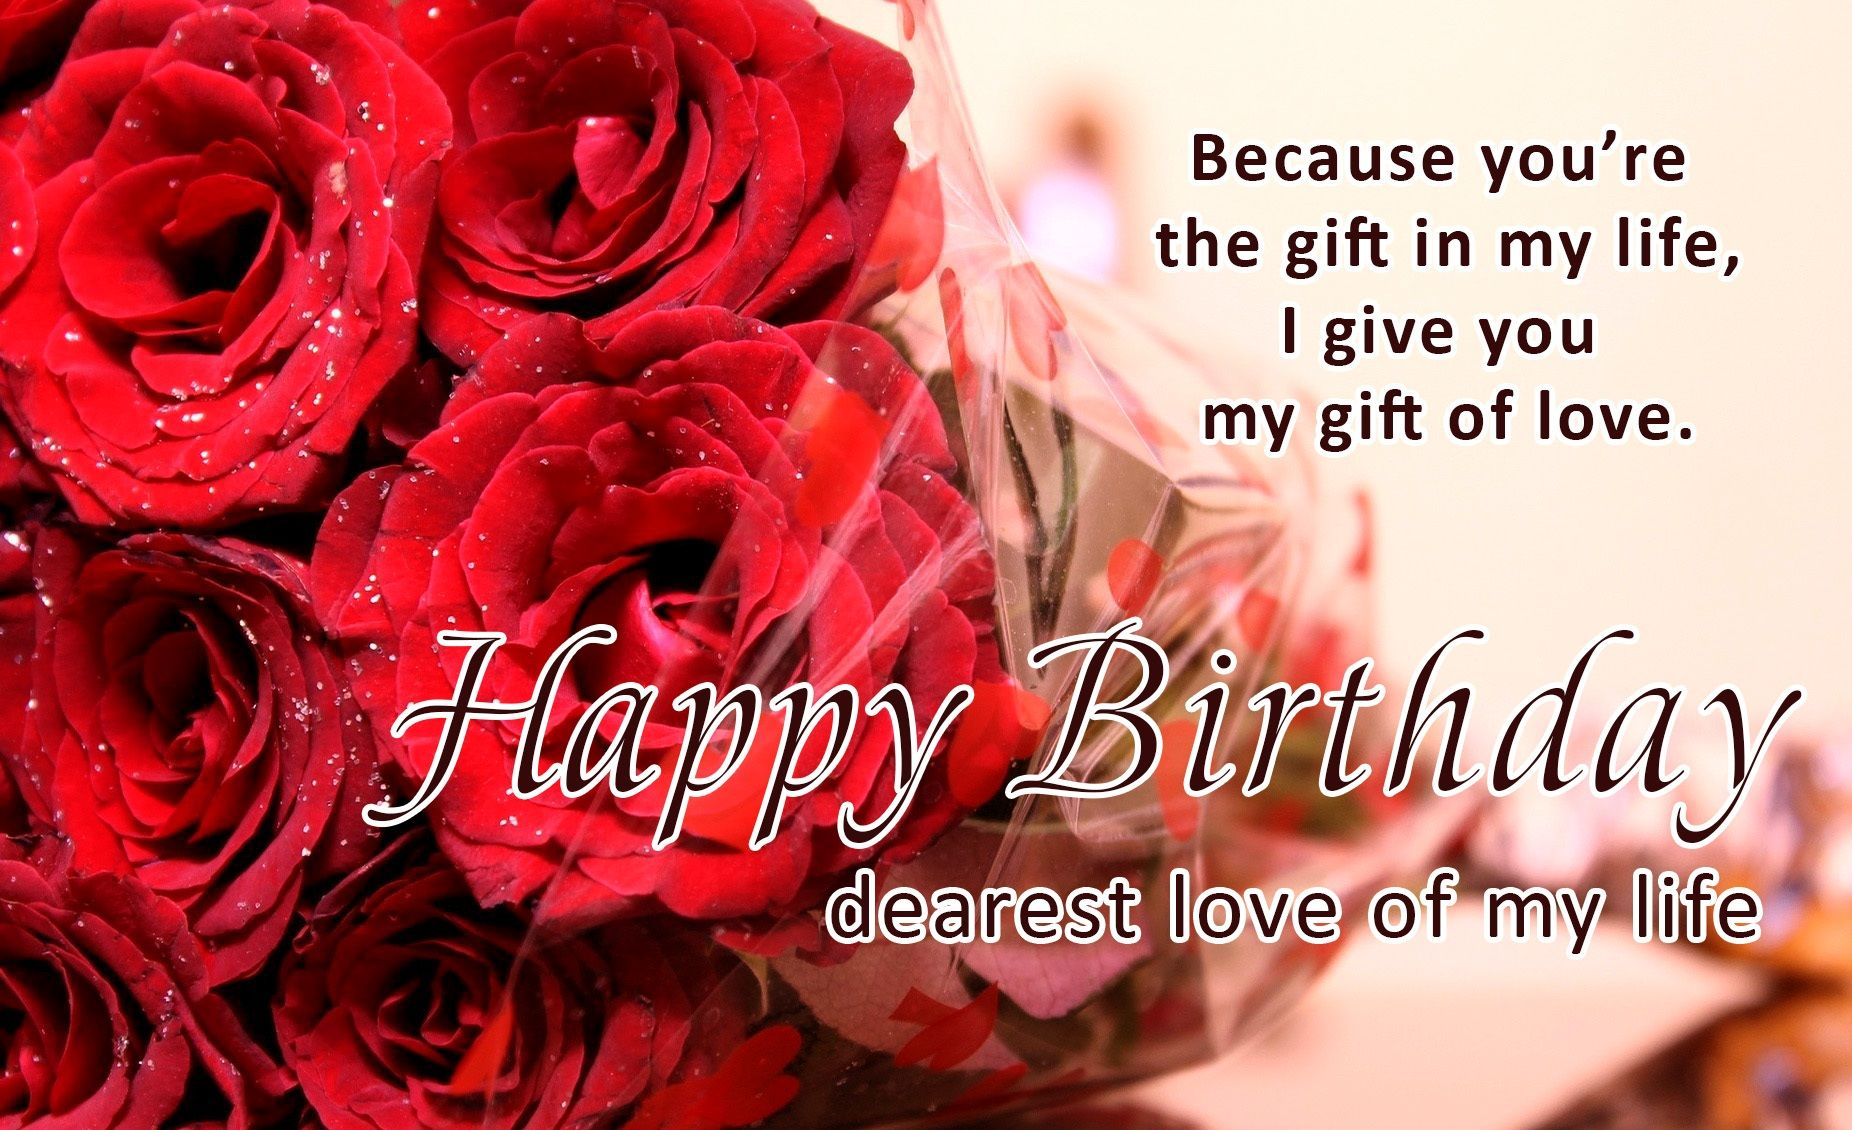 Happy Birthday My Love Cards And Wishes